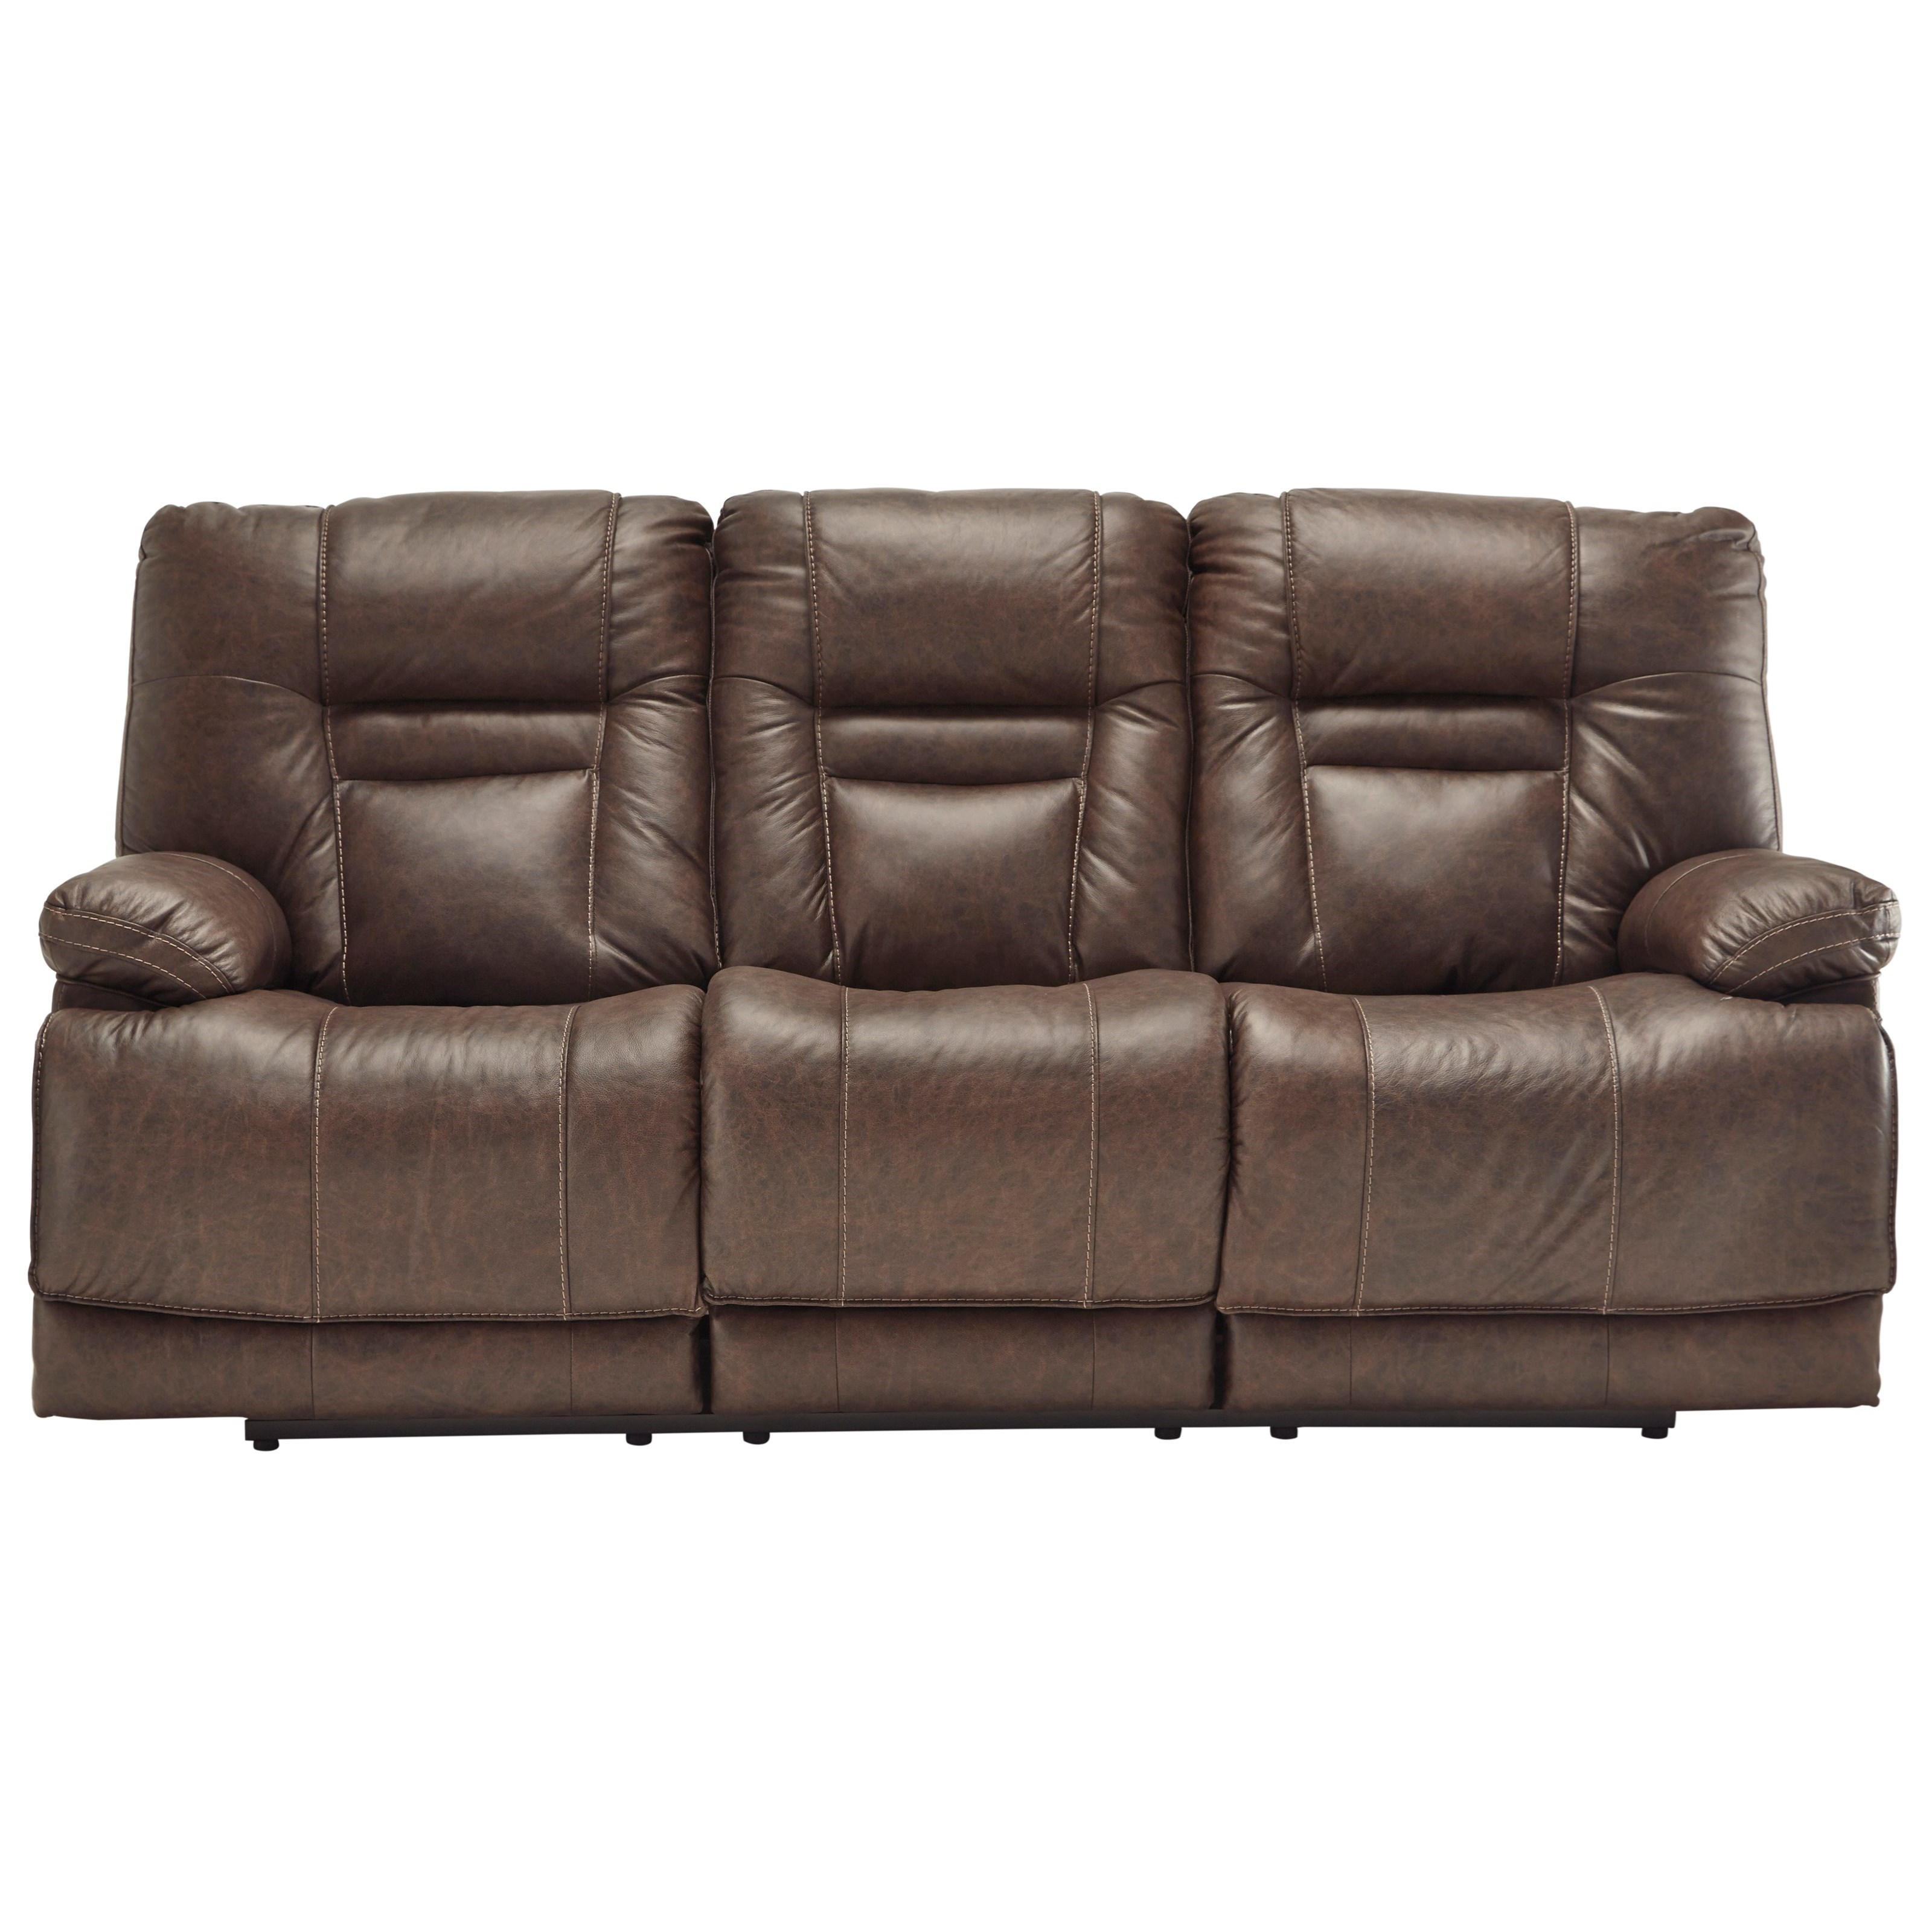 Wurstrow TRIPLE Power Reclining Leather Sofa by Signature at Walker's Furniture